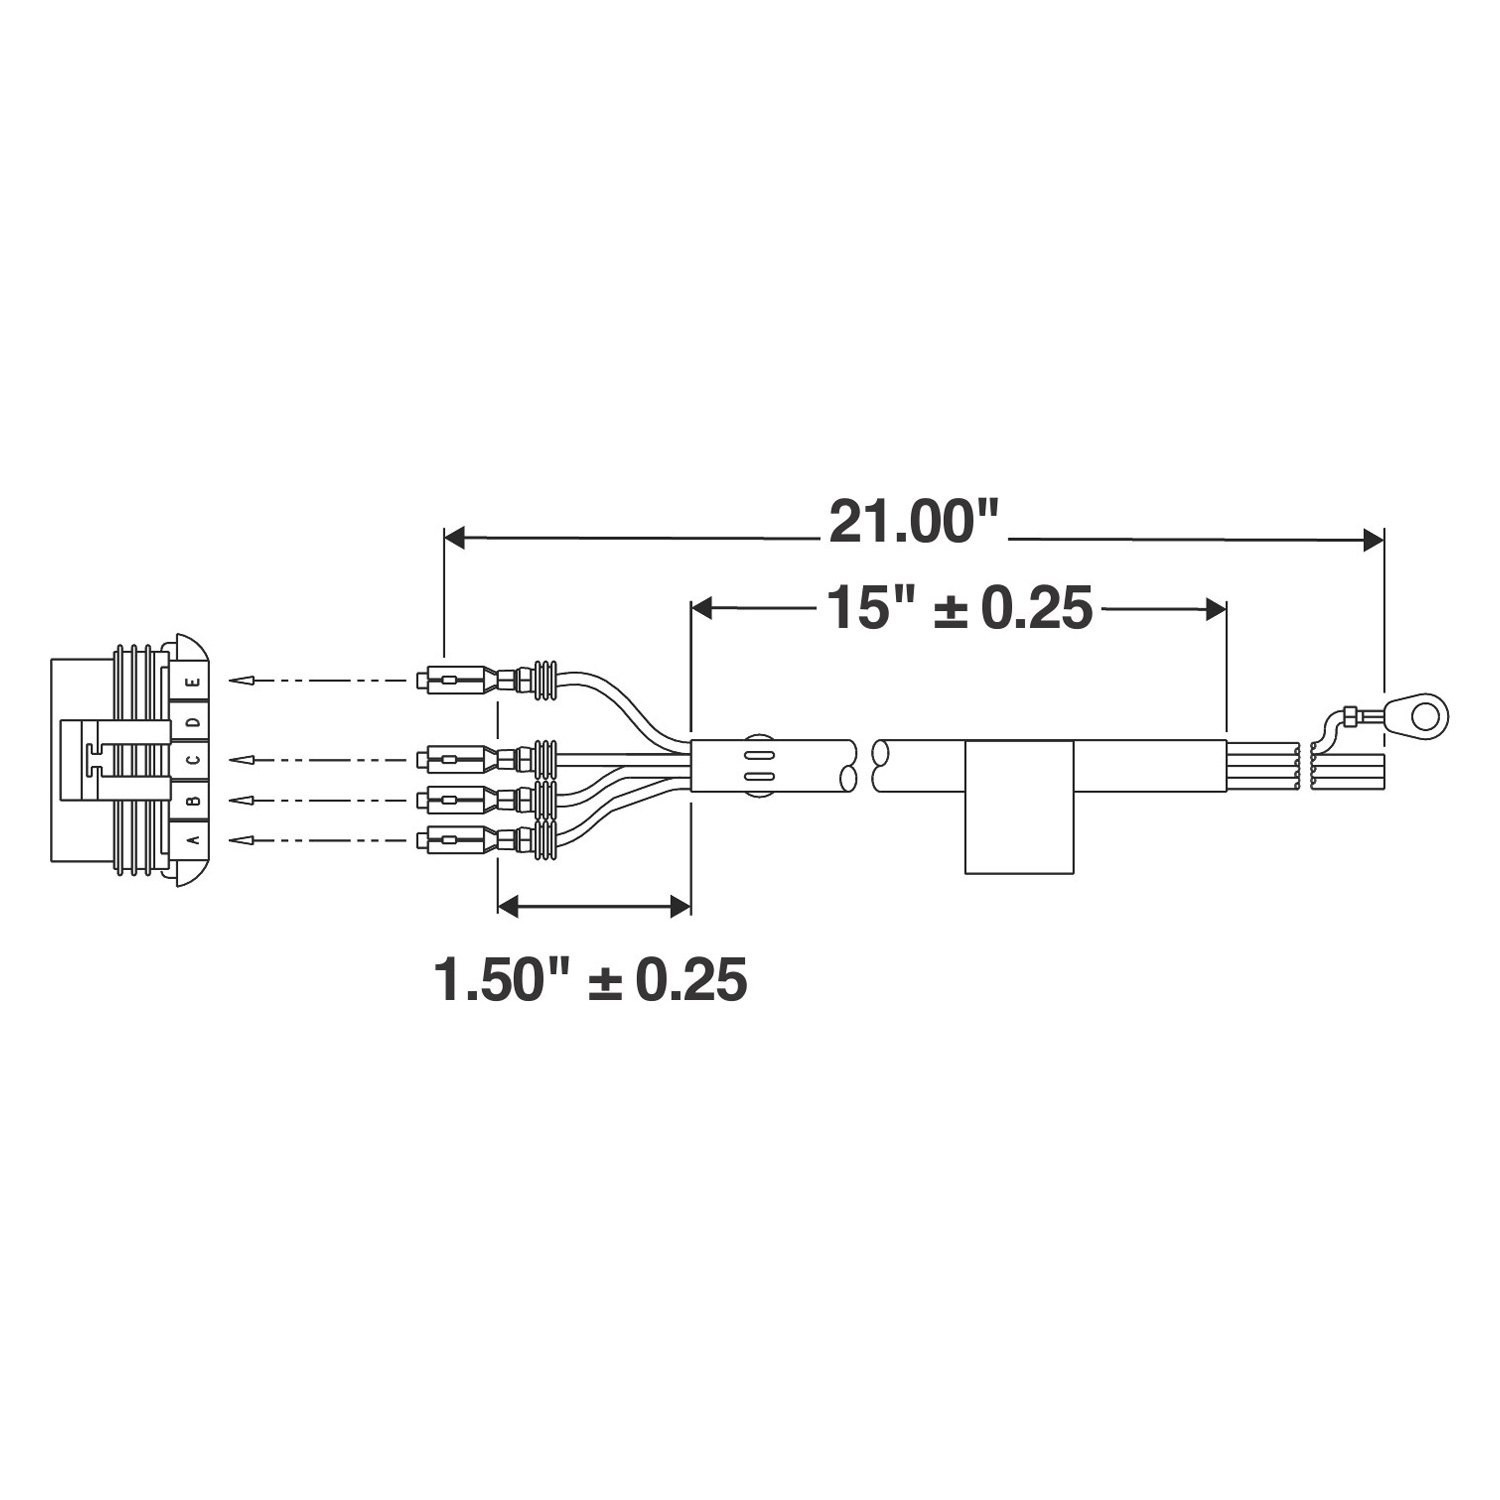 Signal Stat 900 Wiring Diagram - Wiring Diagram And Schematics - Signal Stat 900 Wiring Diagram